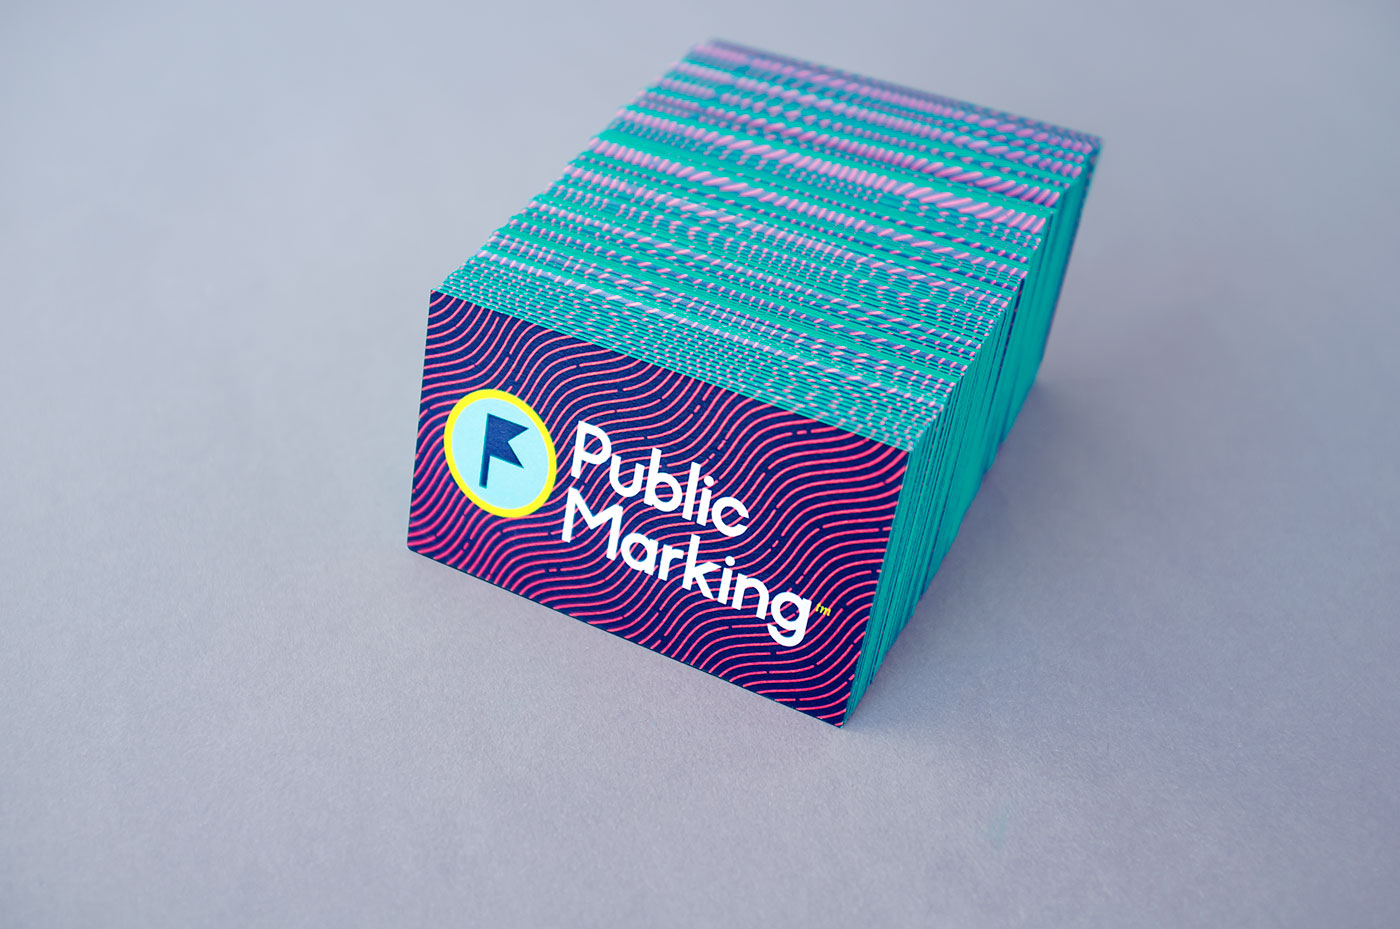 Outfit Branding & Design Public Marking Business Cards